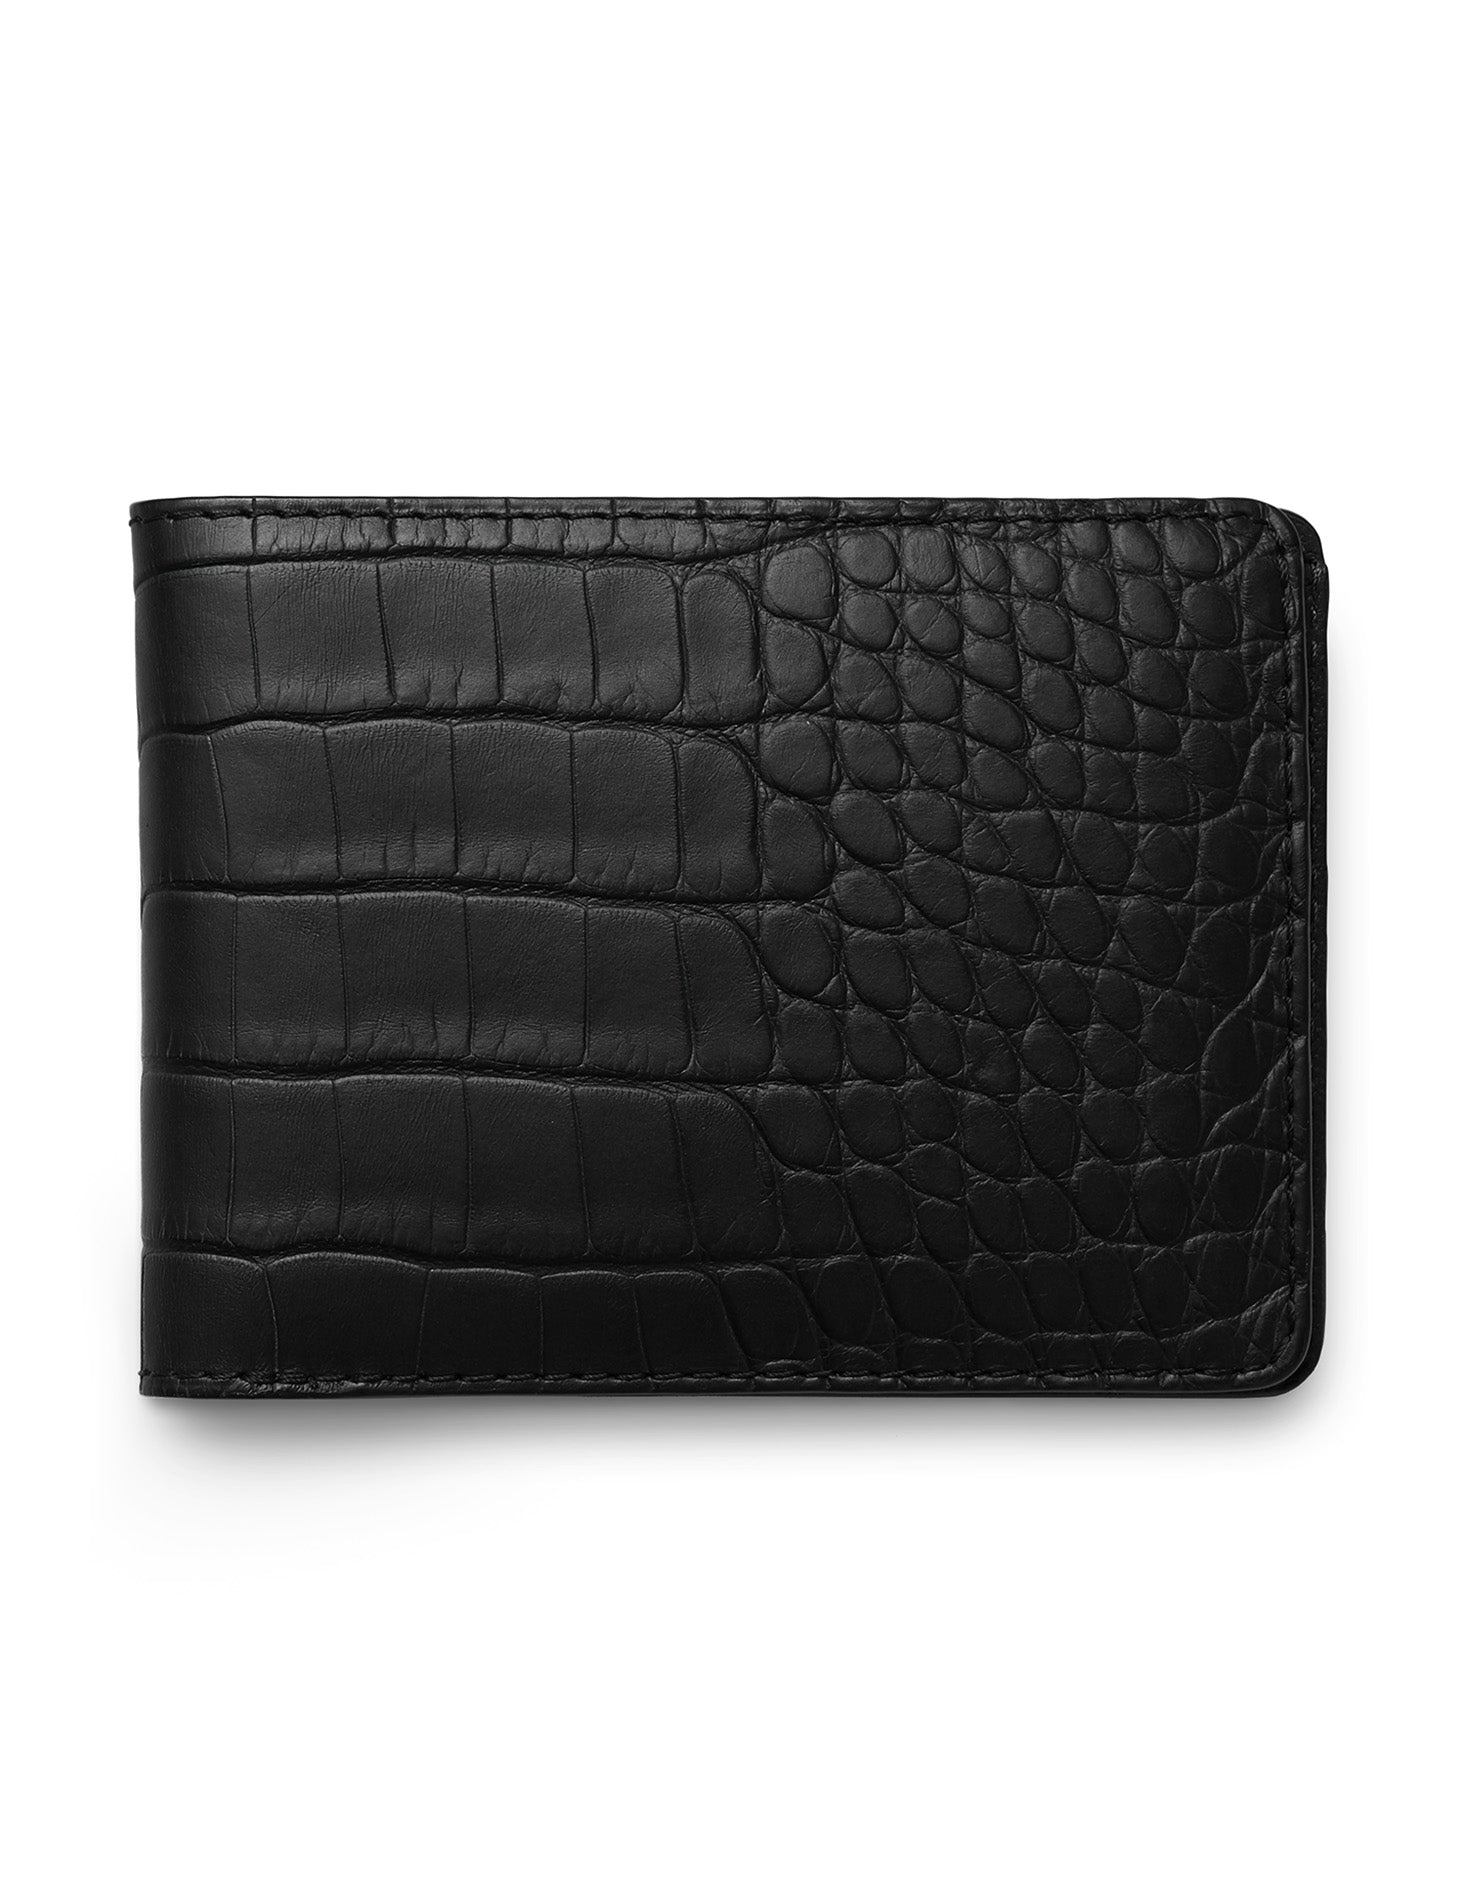 David August Luxury Genuine Alligator Bi-Fold Wallet in Black